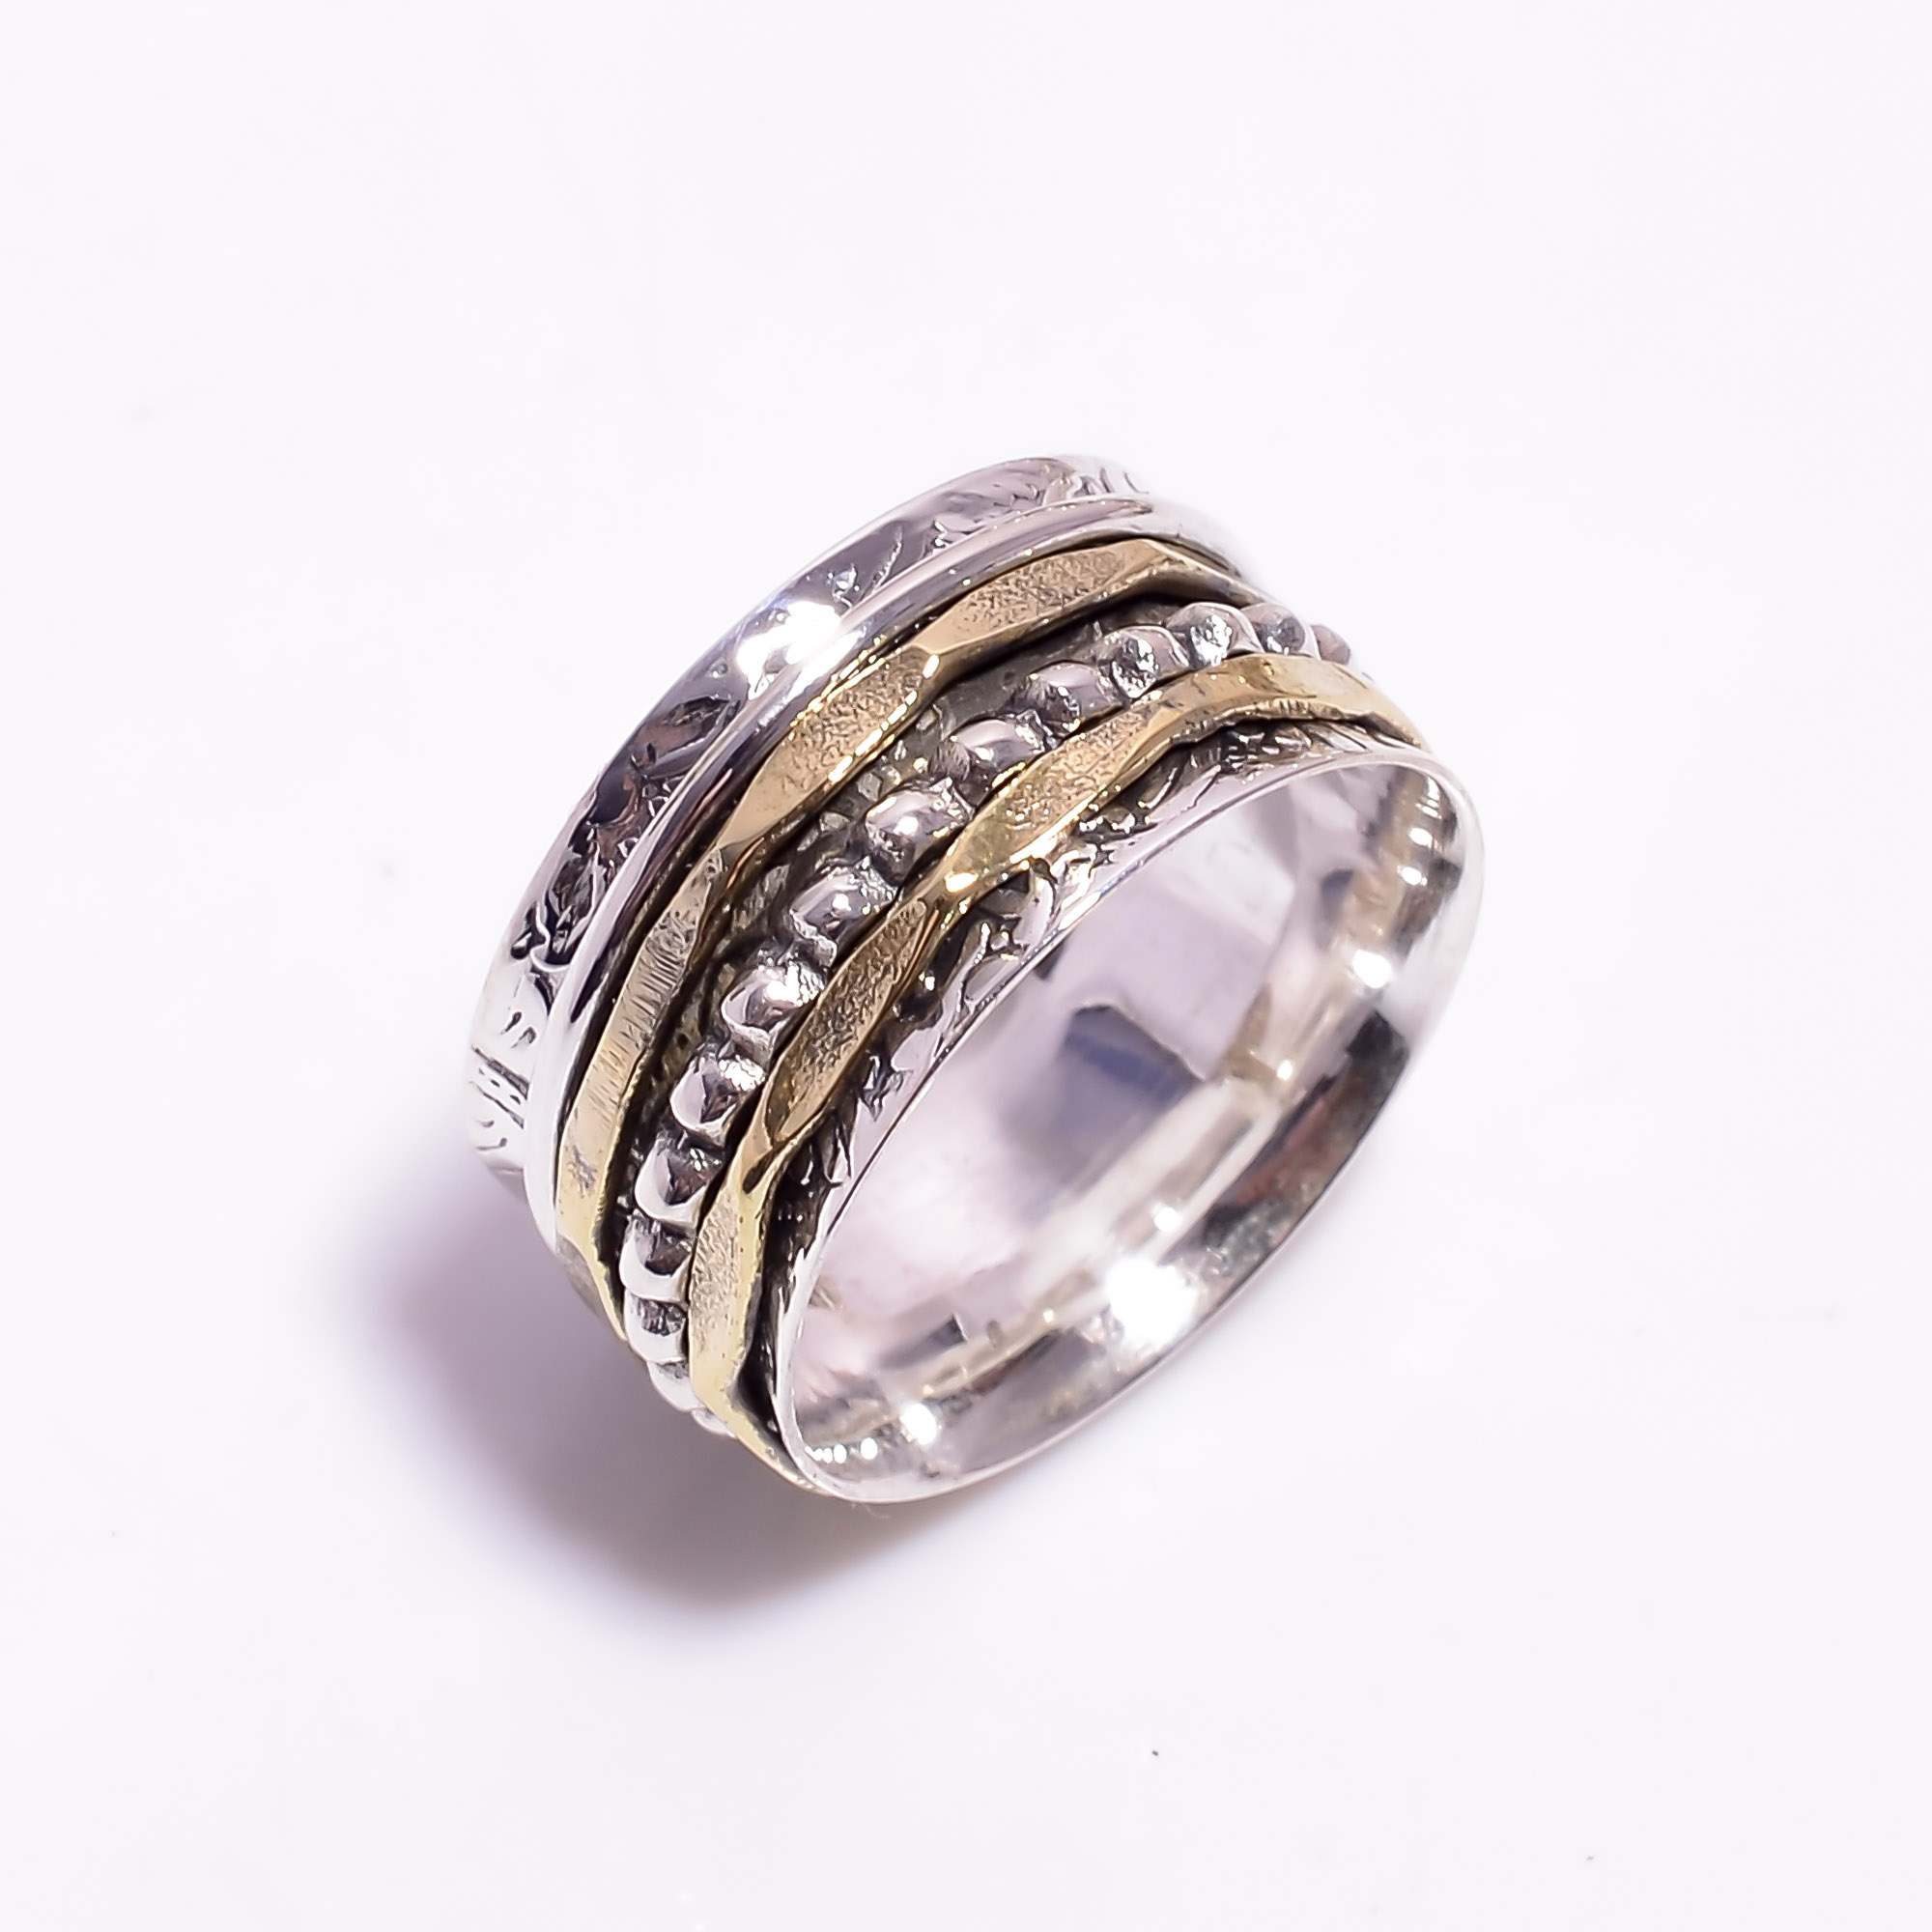 925 Sterling Silver Meditation Spinner Ring Size US 9